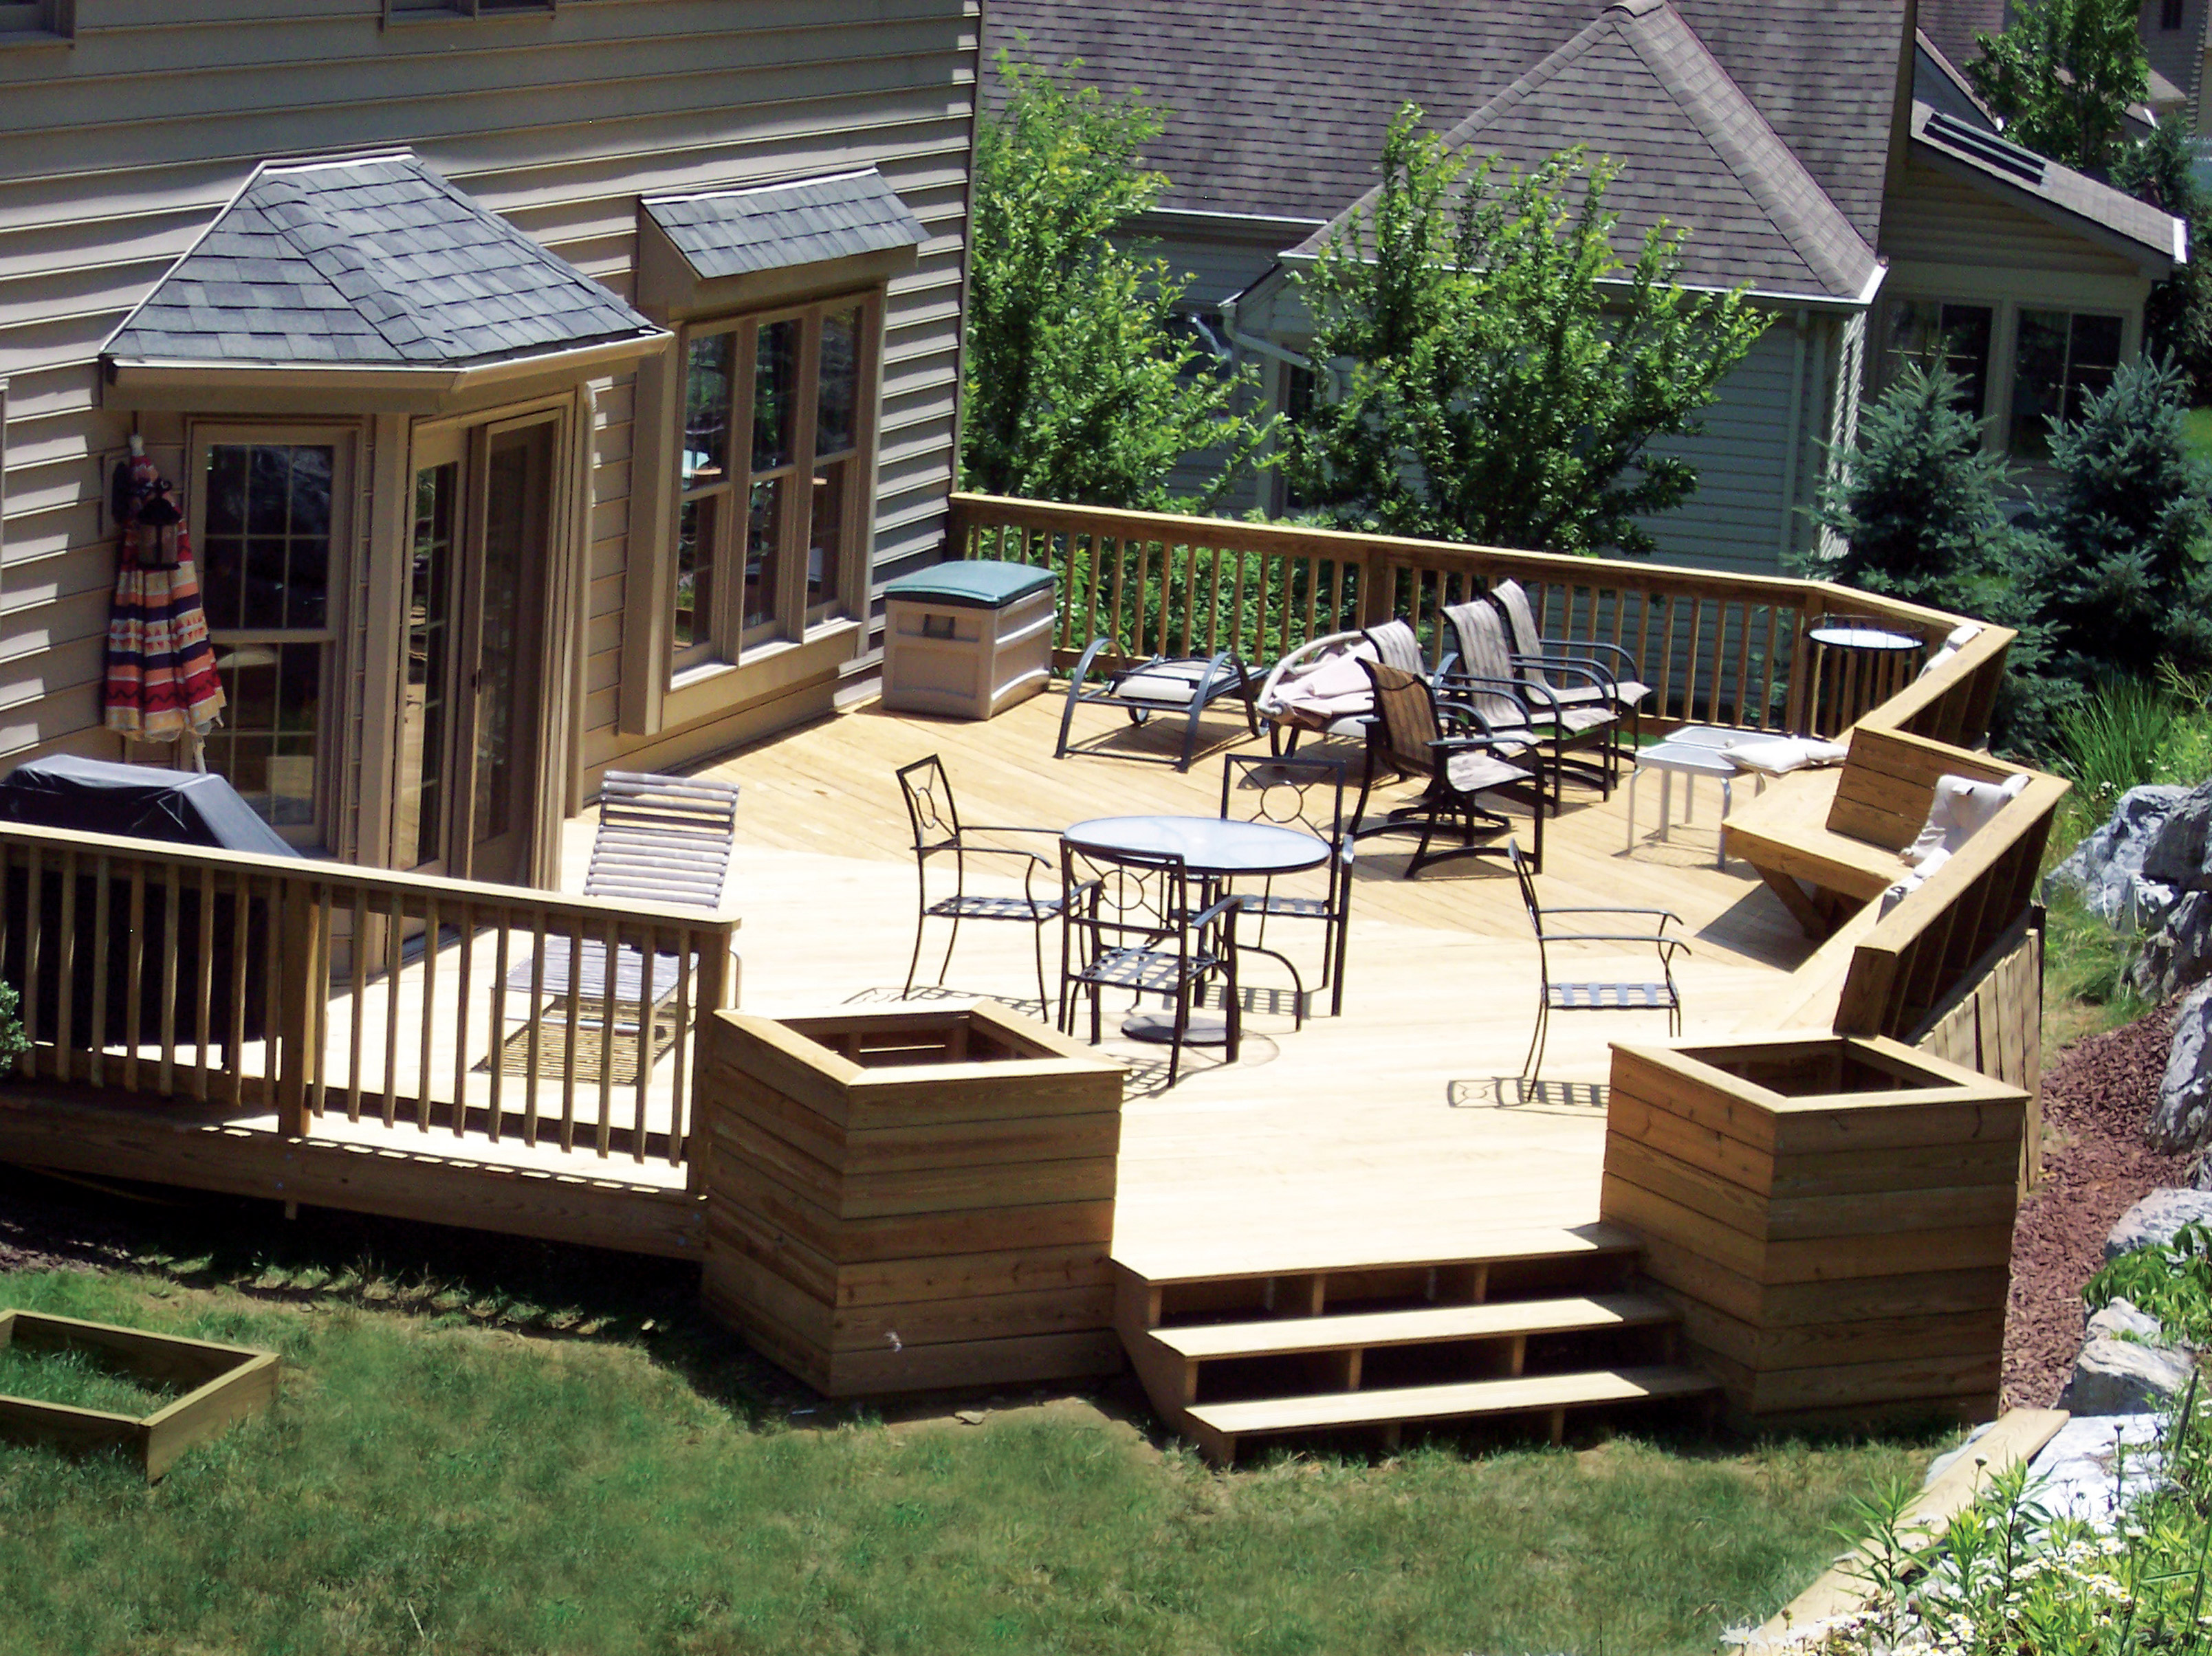 Ground Level Deck Designs Backyard Idea Deck Design, house ... on Back Deck Ideas For Ranch Style Homes id=48220